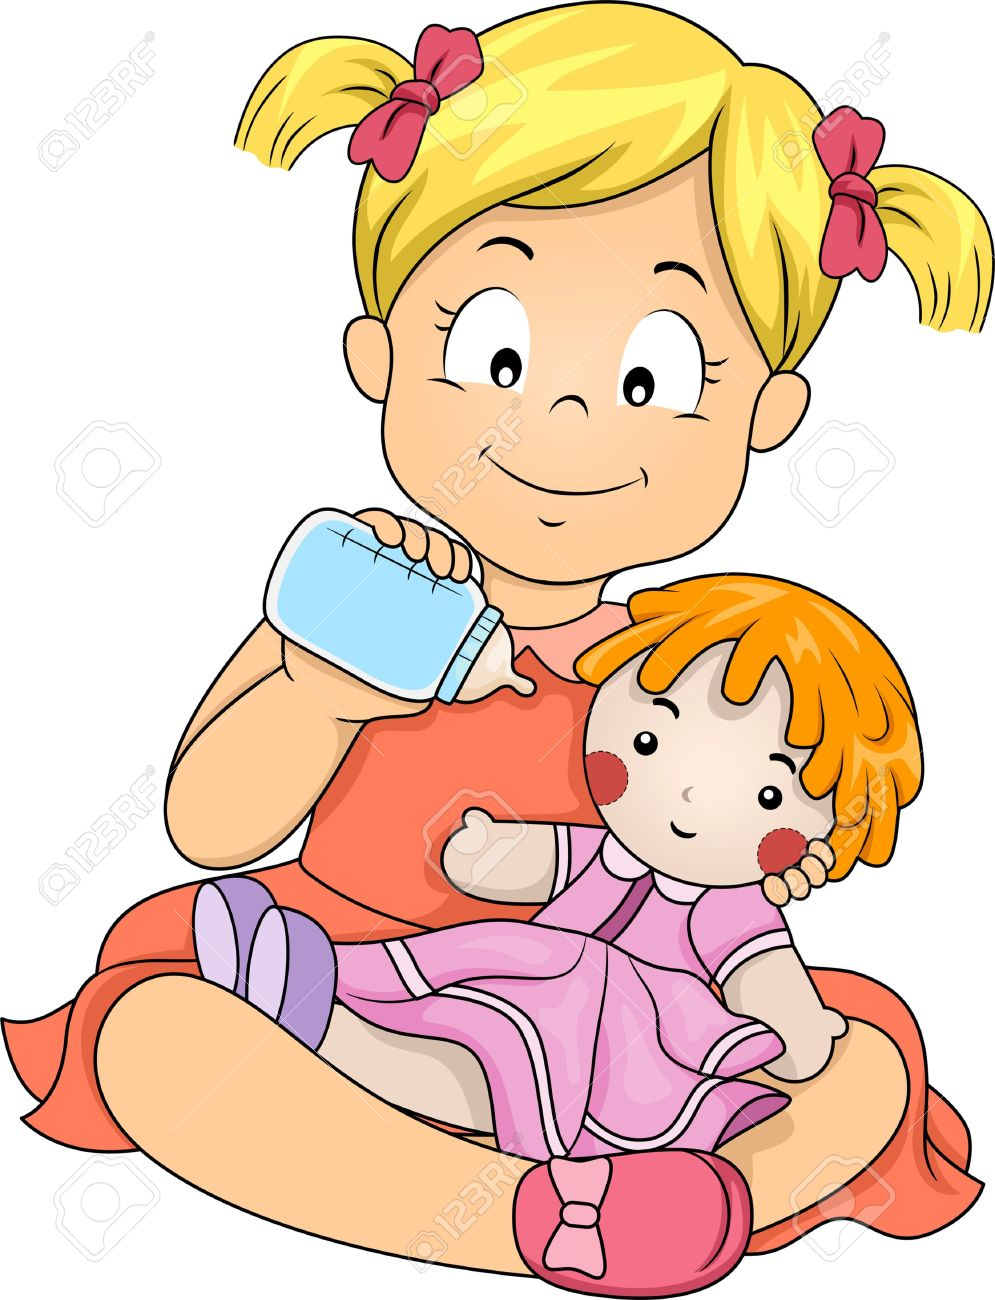 995x1300 Baby Doll Clipart